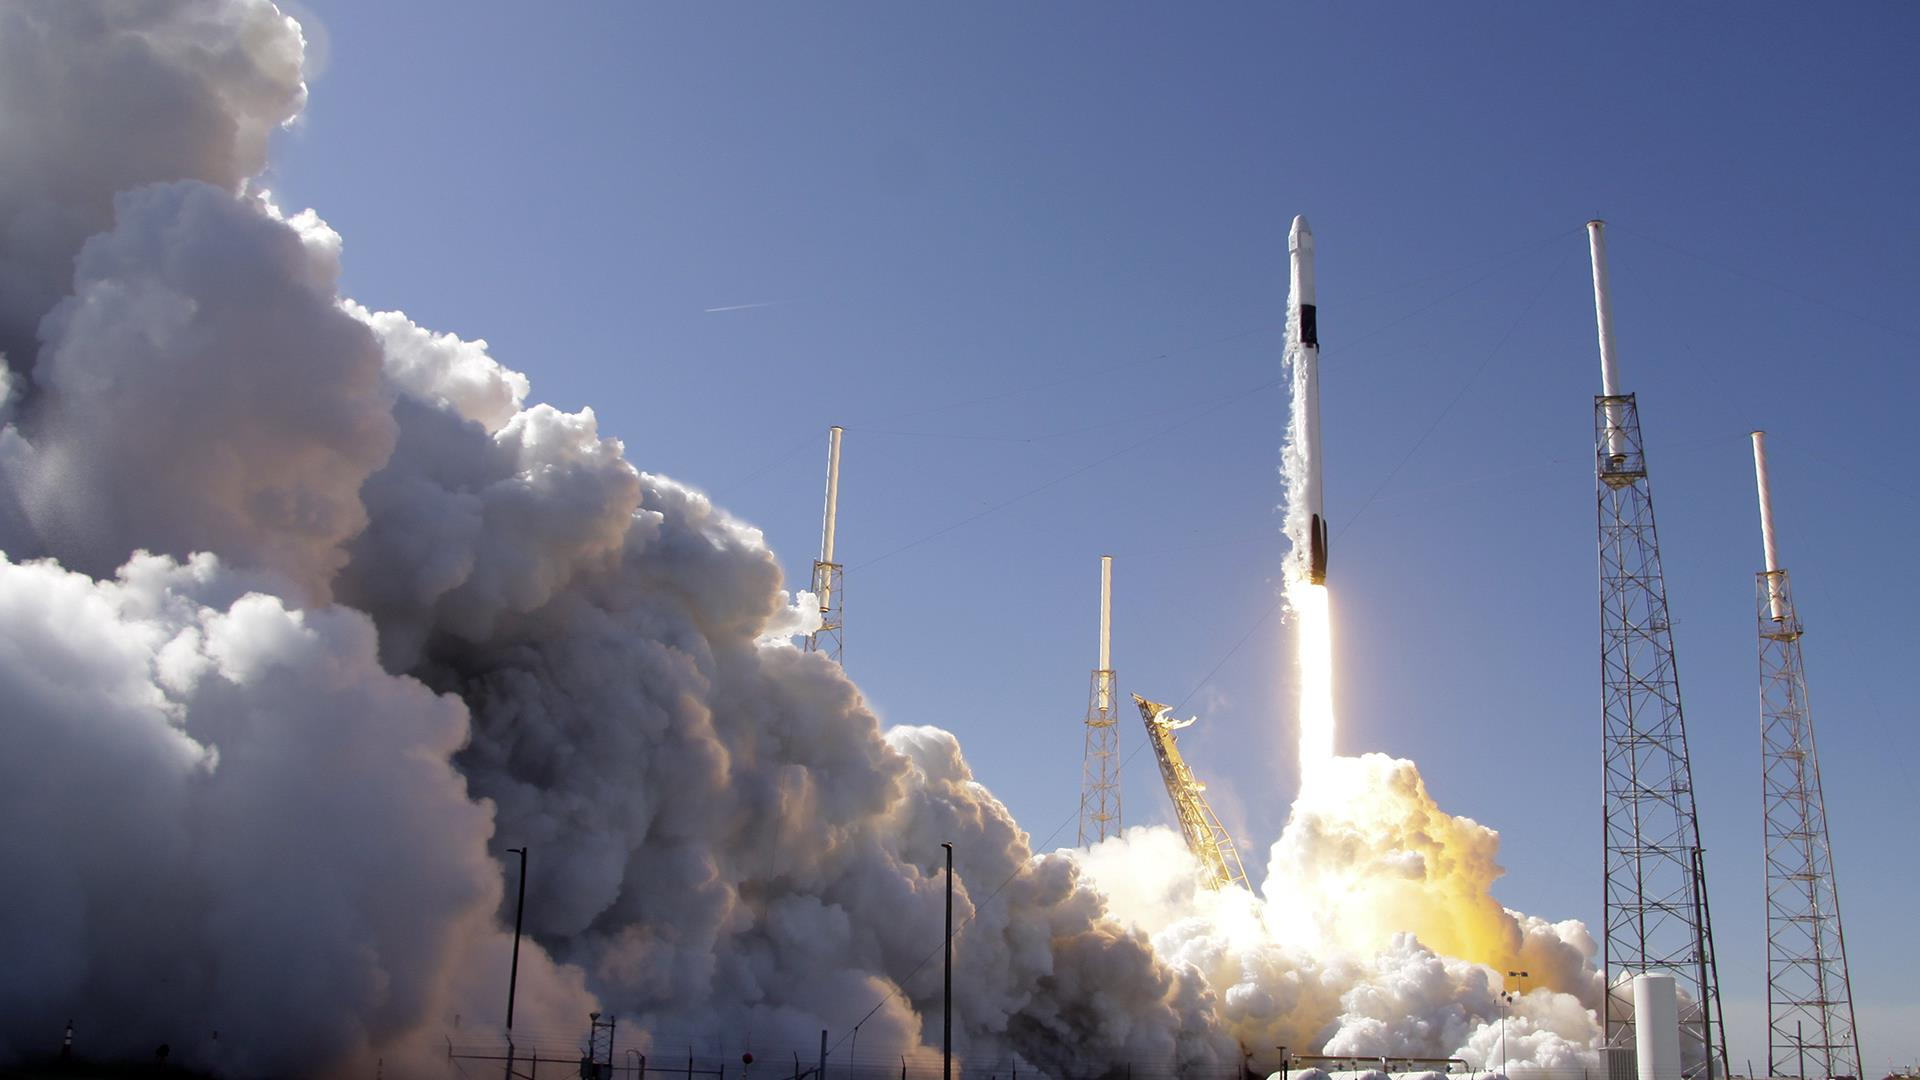 Watch Falcon 9 rocket launch cargo mission to International Space Station